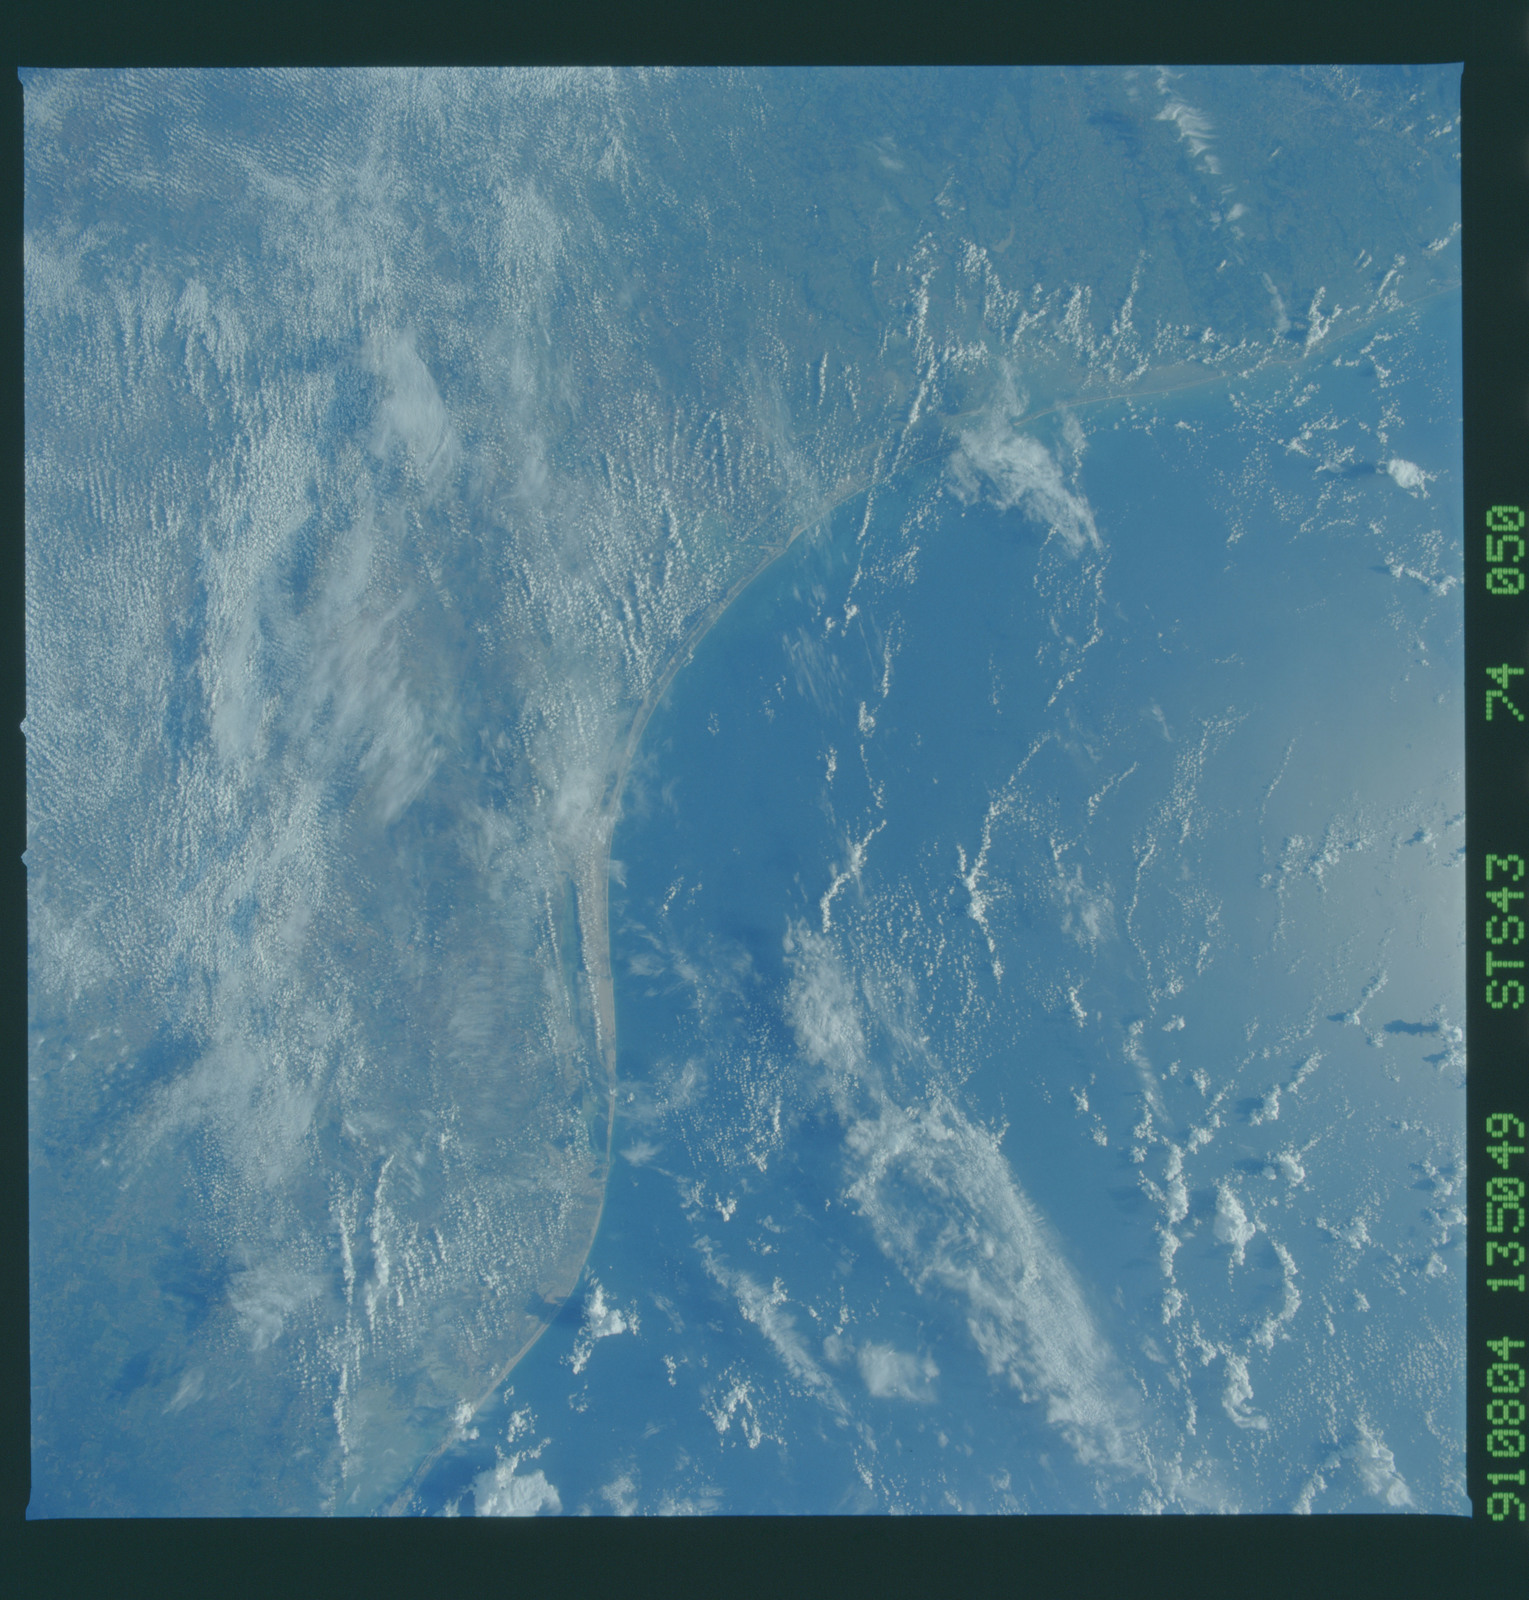 S43-74-050 - STS-043 - STS-43 earth observations